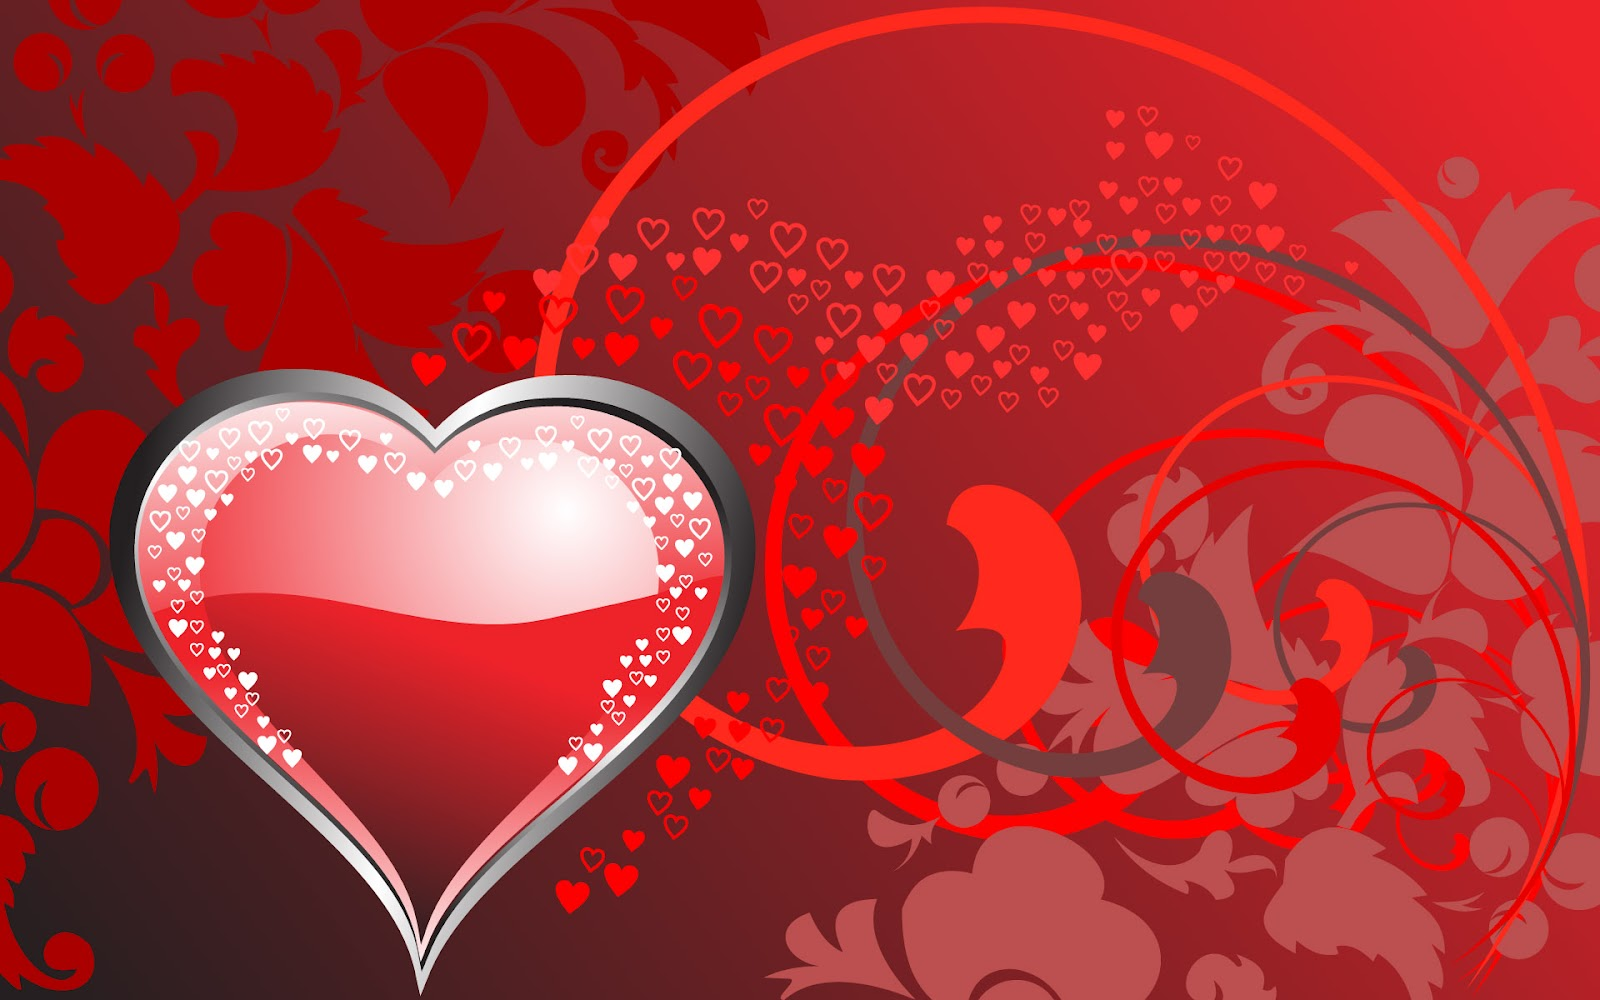 New Latest i love you wallpapers on this valentines day 2013 1600x1000